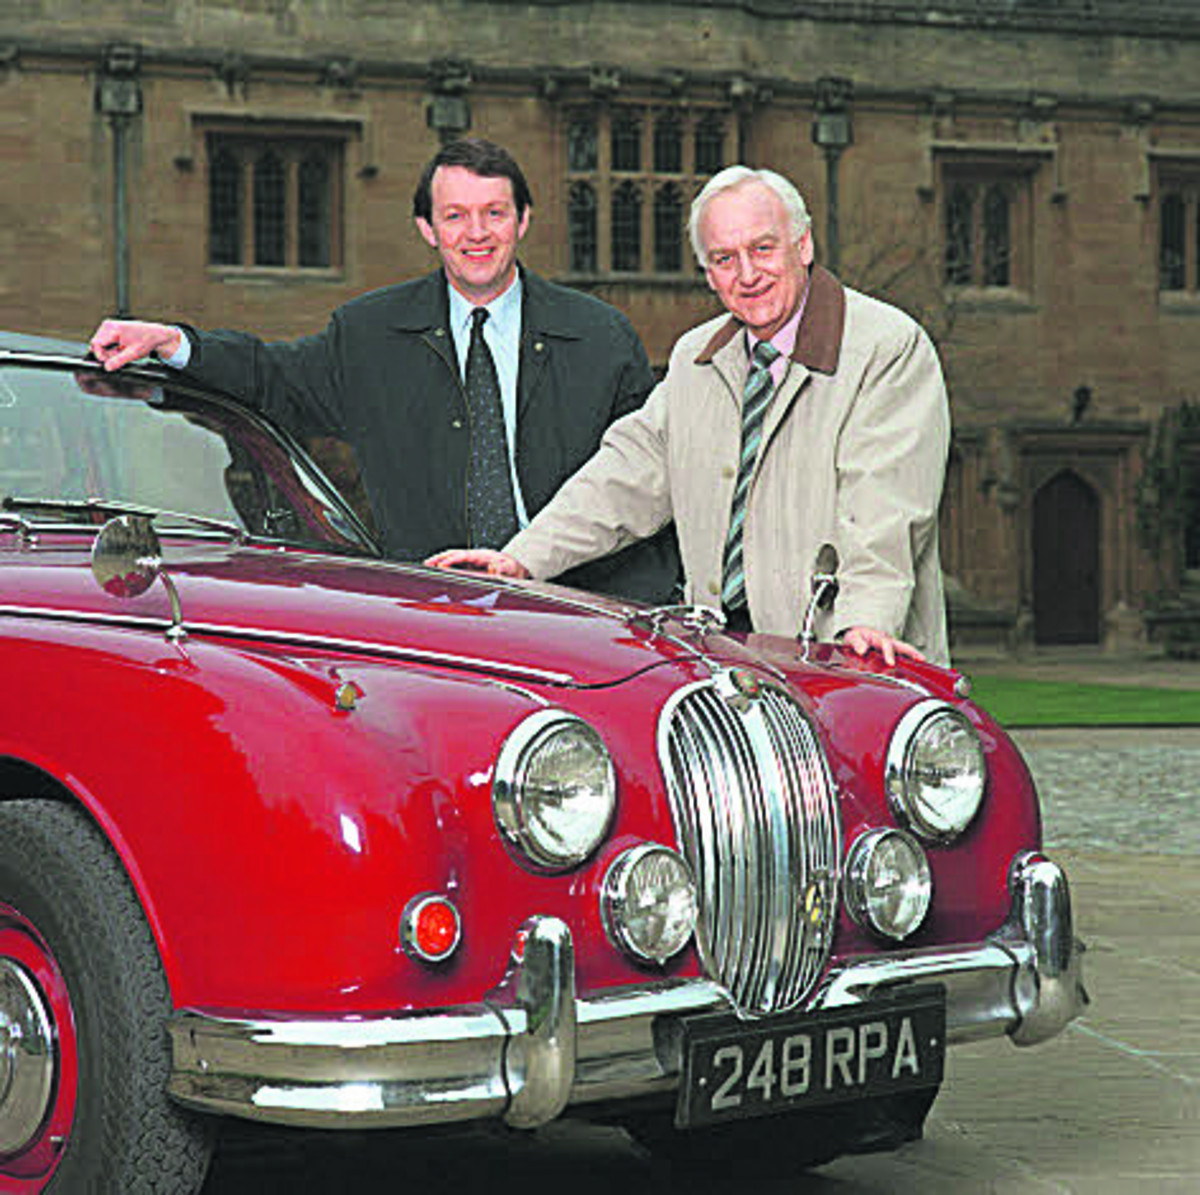 John Thaw, right, and Kevin Whately